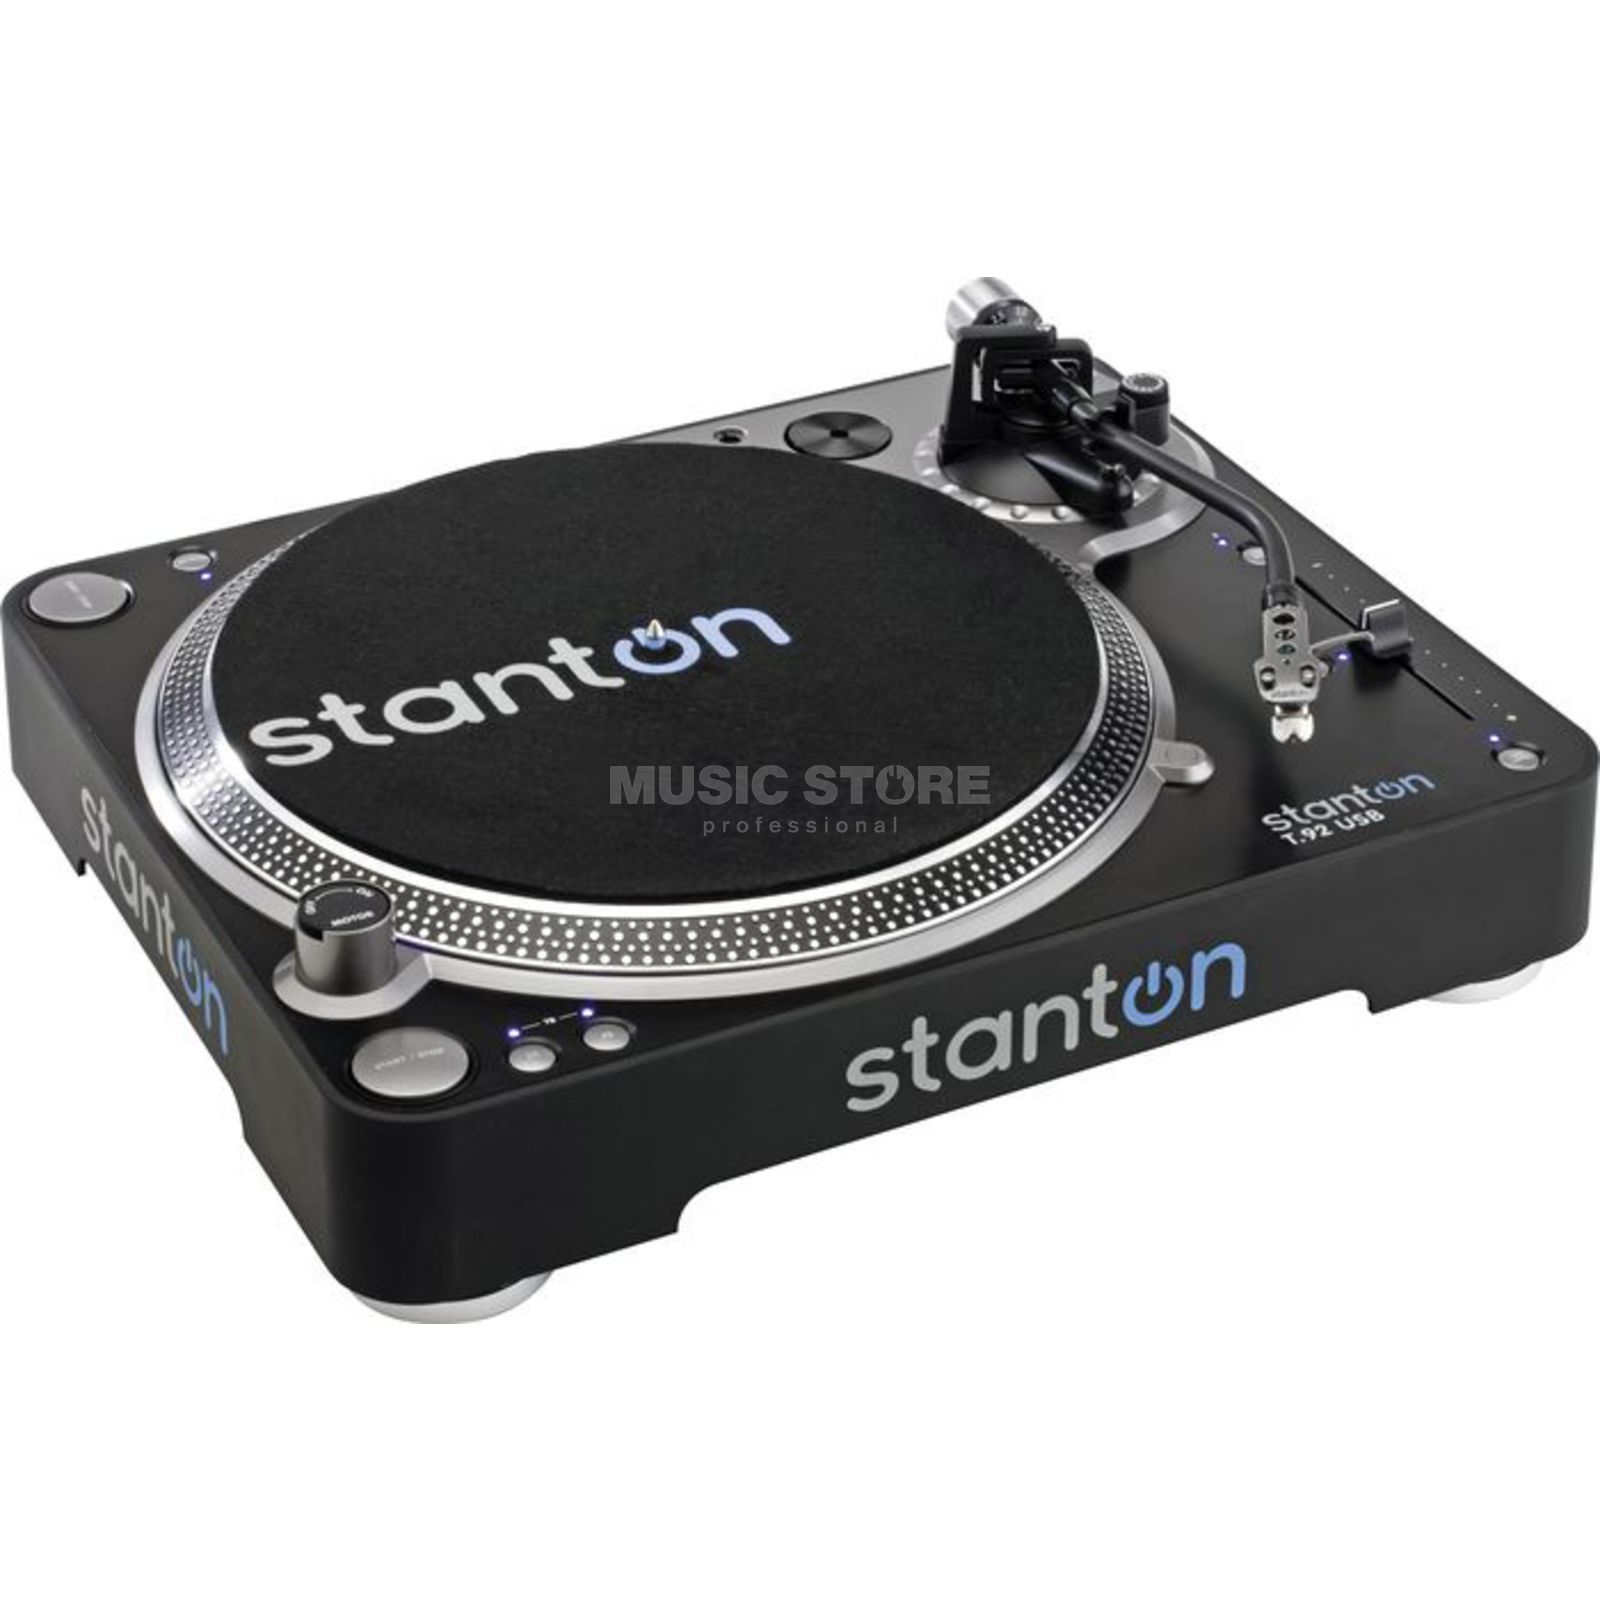 Stanton T.92 USB Turntable inkl. Cakewalk Pyro 5 Software Produktbild